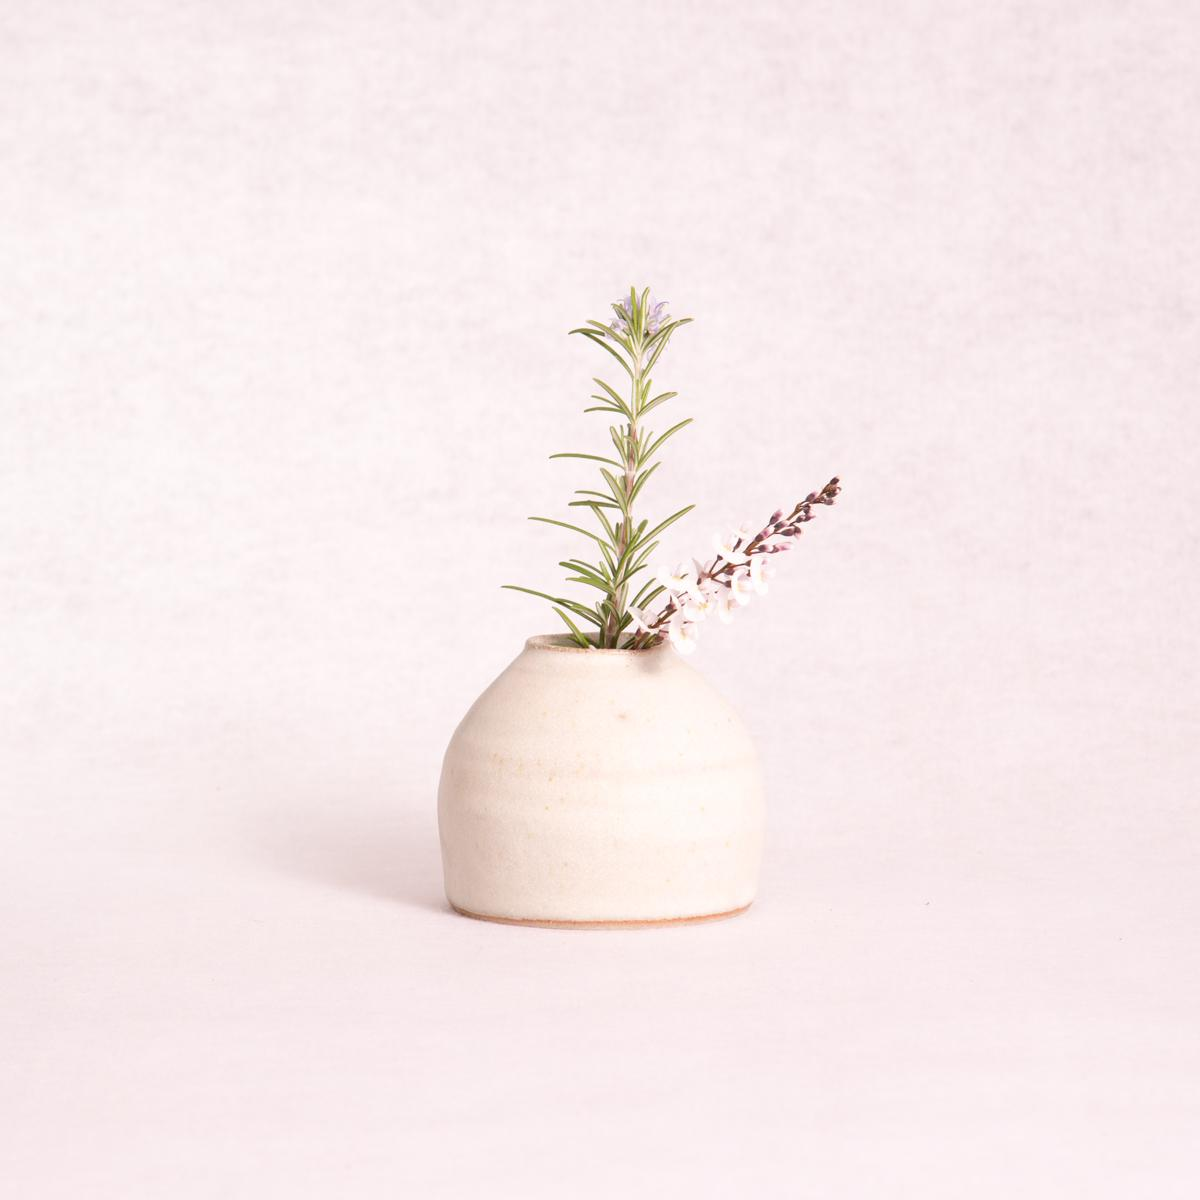 Ceramic Urchin Vase - Medium (Matte White) - Vase - Throw Some Seeds - Nature Inspired Gifts for the Home & Garden